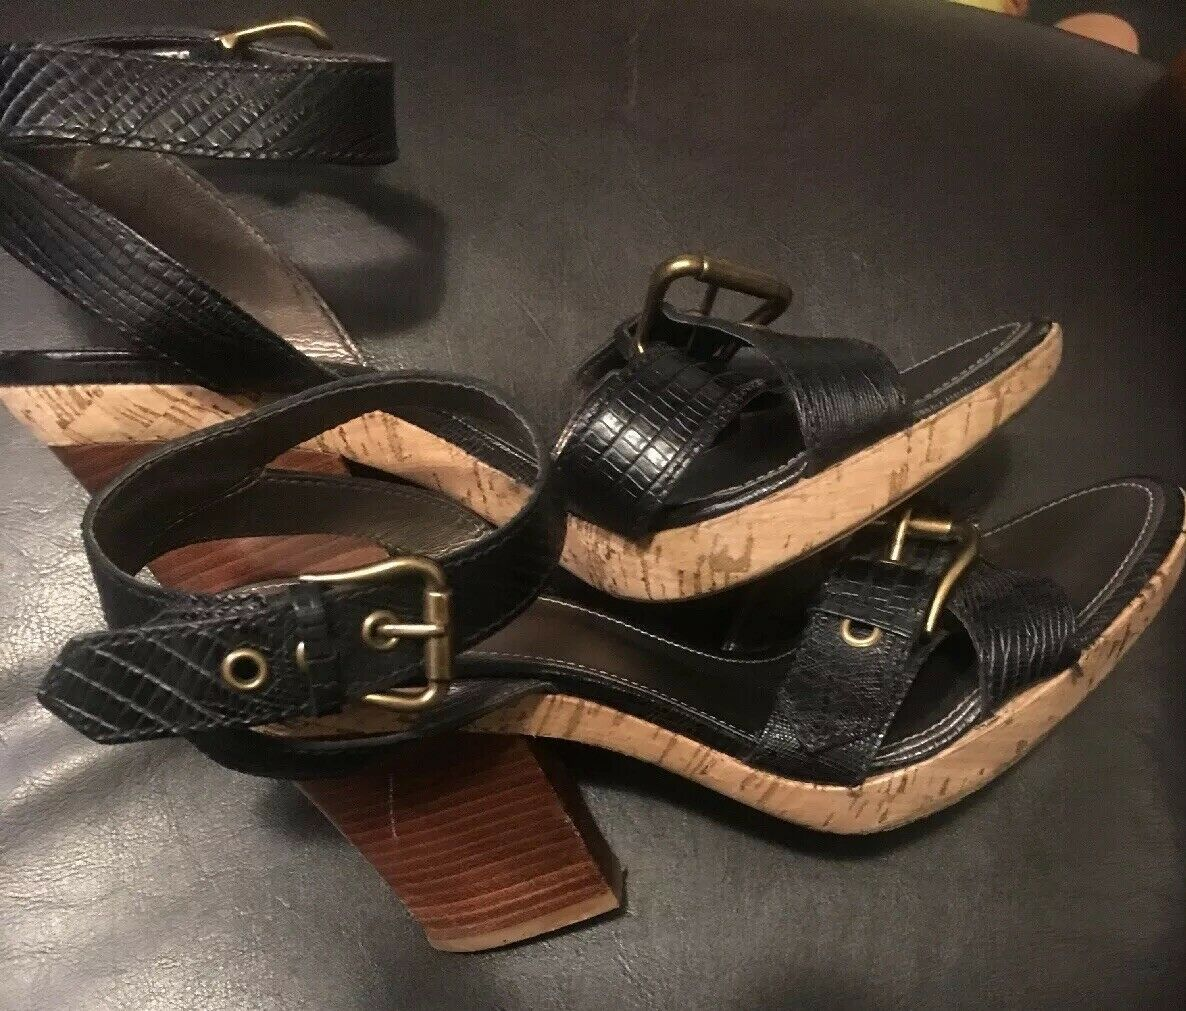 franco sarto womens leather wooden high heels sandals strappy blk sz 9.5 image 5